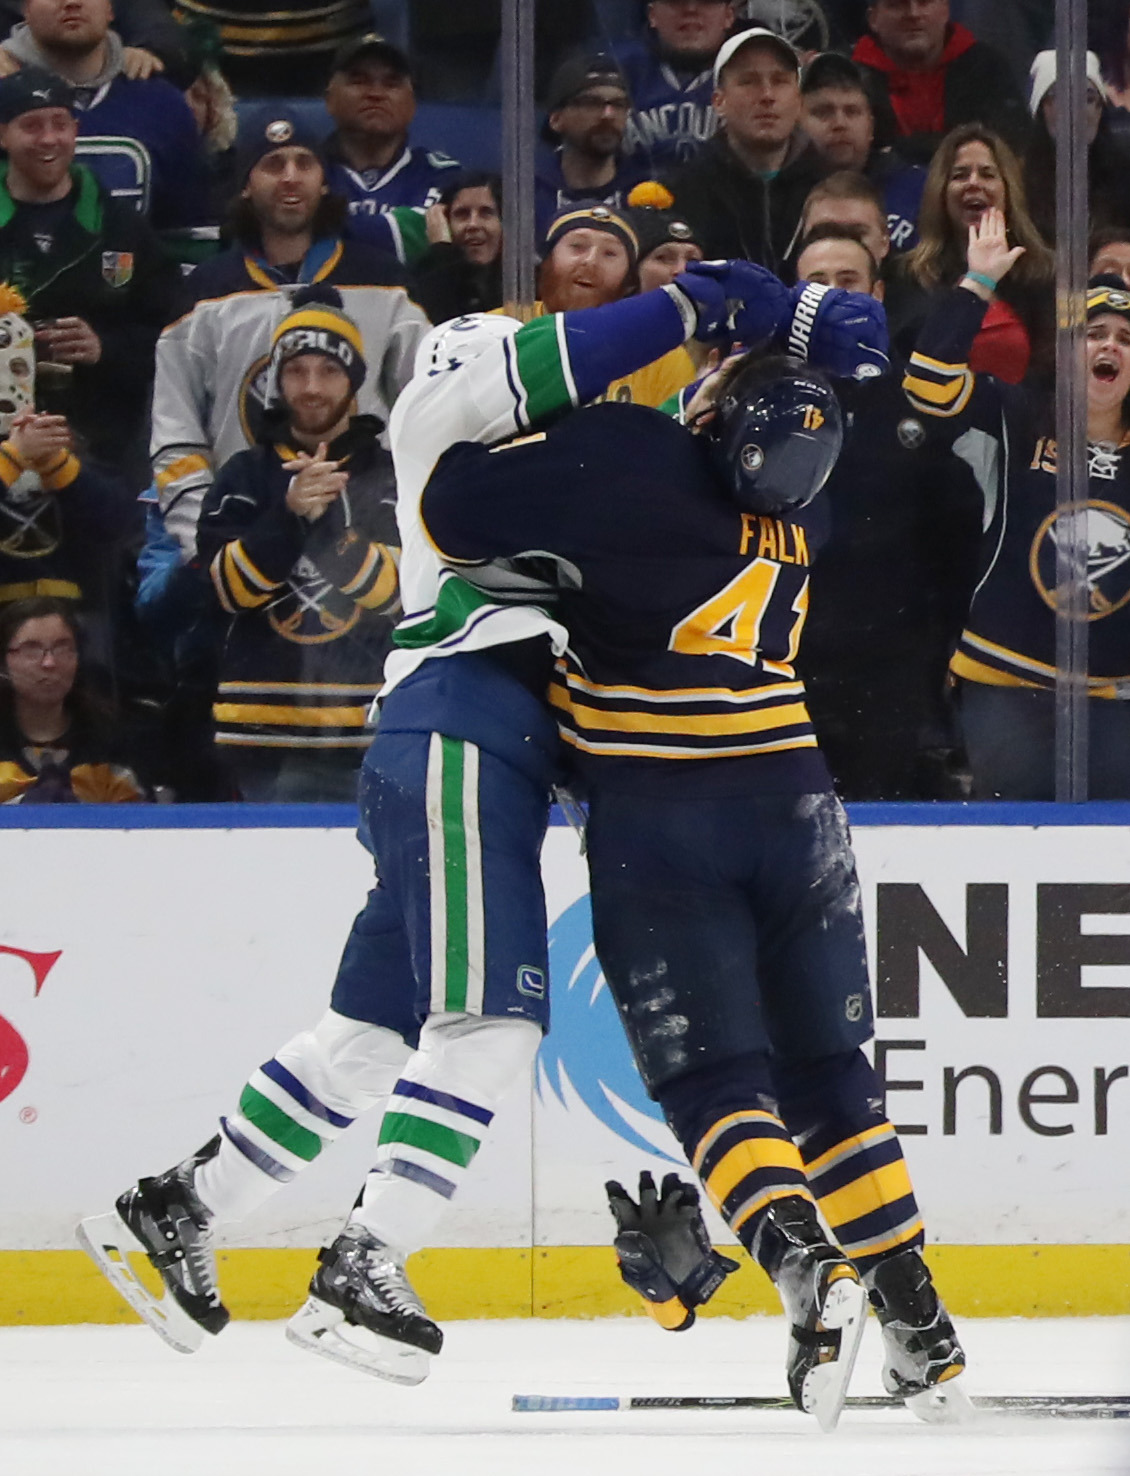 Buffalo Sabres defenseman Justin Falk (41) levels Vancouver Canucks right wing Alexandre Burrows (14) after he hit Buffalo Sabres goalie Robin Lehner (40) in the first period at KeyBank Center in Buffalo N.Y. on Sunday, Feb. 12, 2017.  (James P. McCoy/Buffalo News)